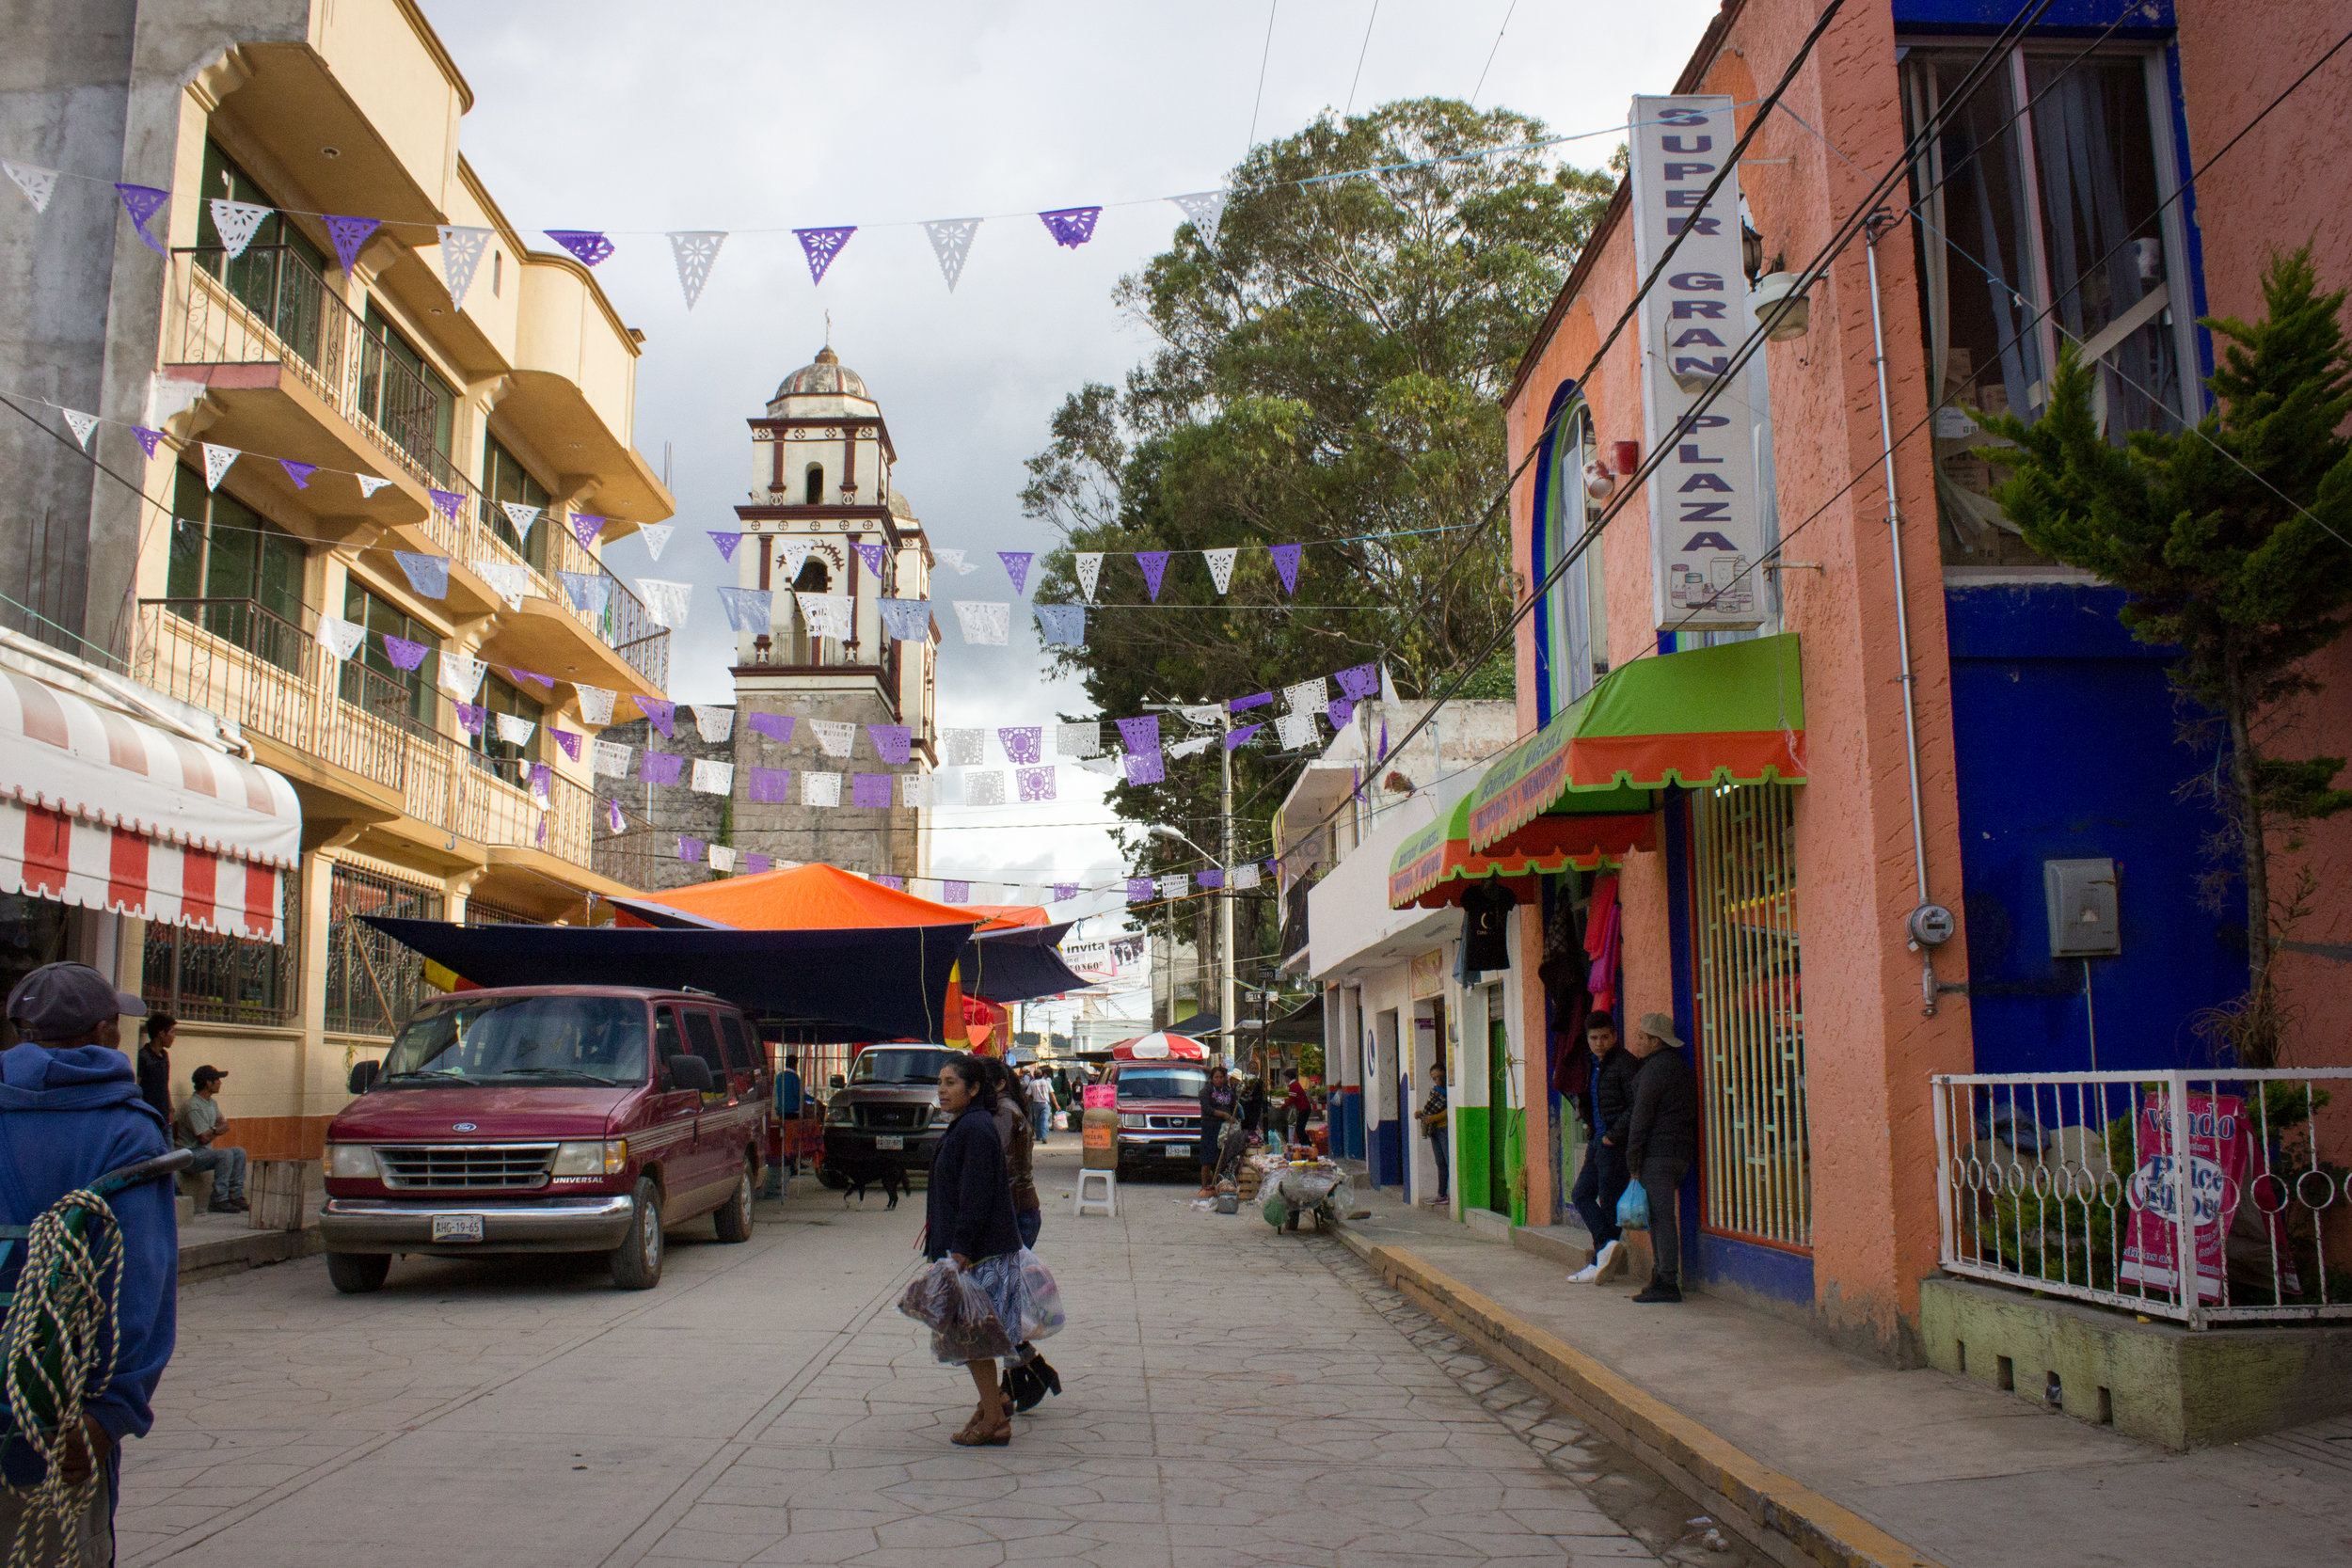 The town of Chalcatongo, where twelve of us caravanned on June 28. Ilene and I spent four nights here, spending the majority of our trip   with the Ruiz family and their church body in the village of nearby Chapultepec.